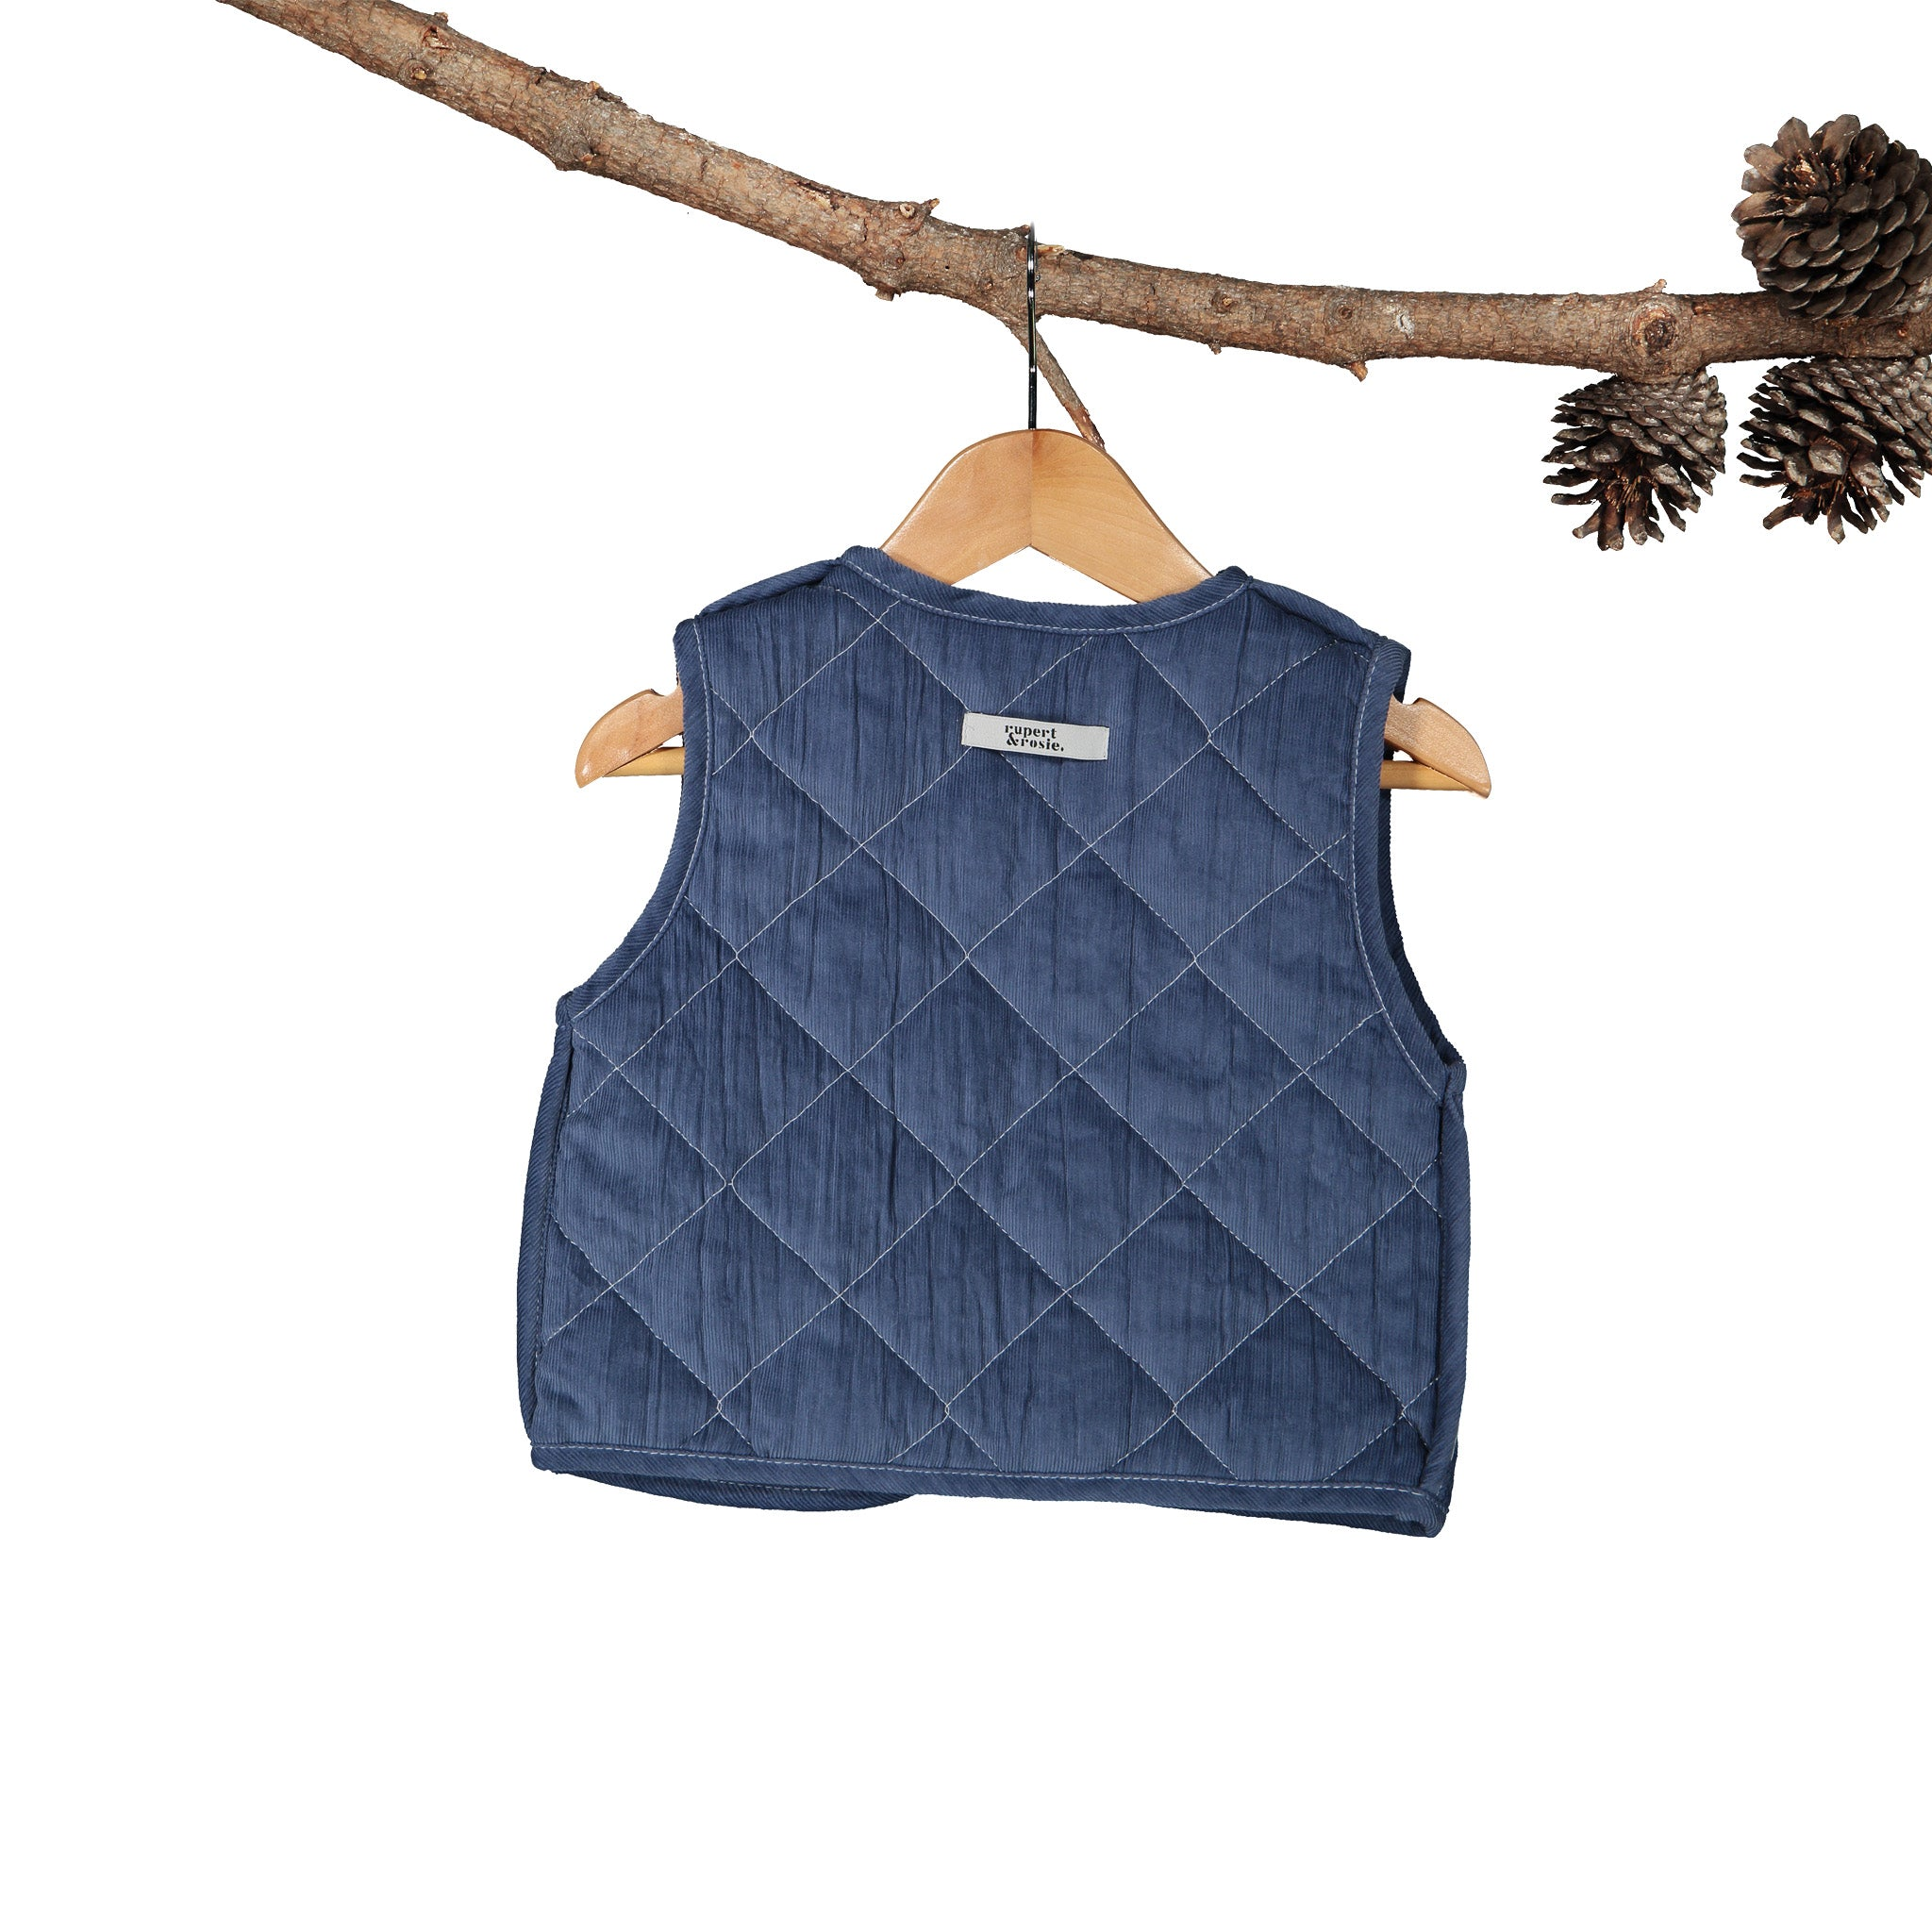 Reversible Gilet - Air-Force Blue Corduroy with Navy Stripe